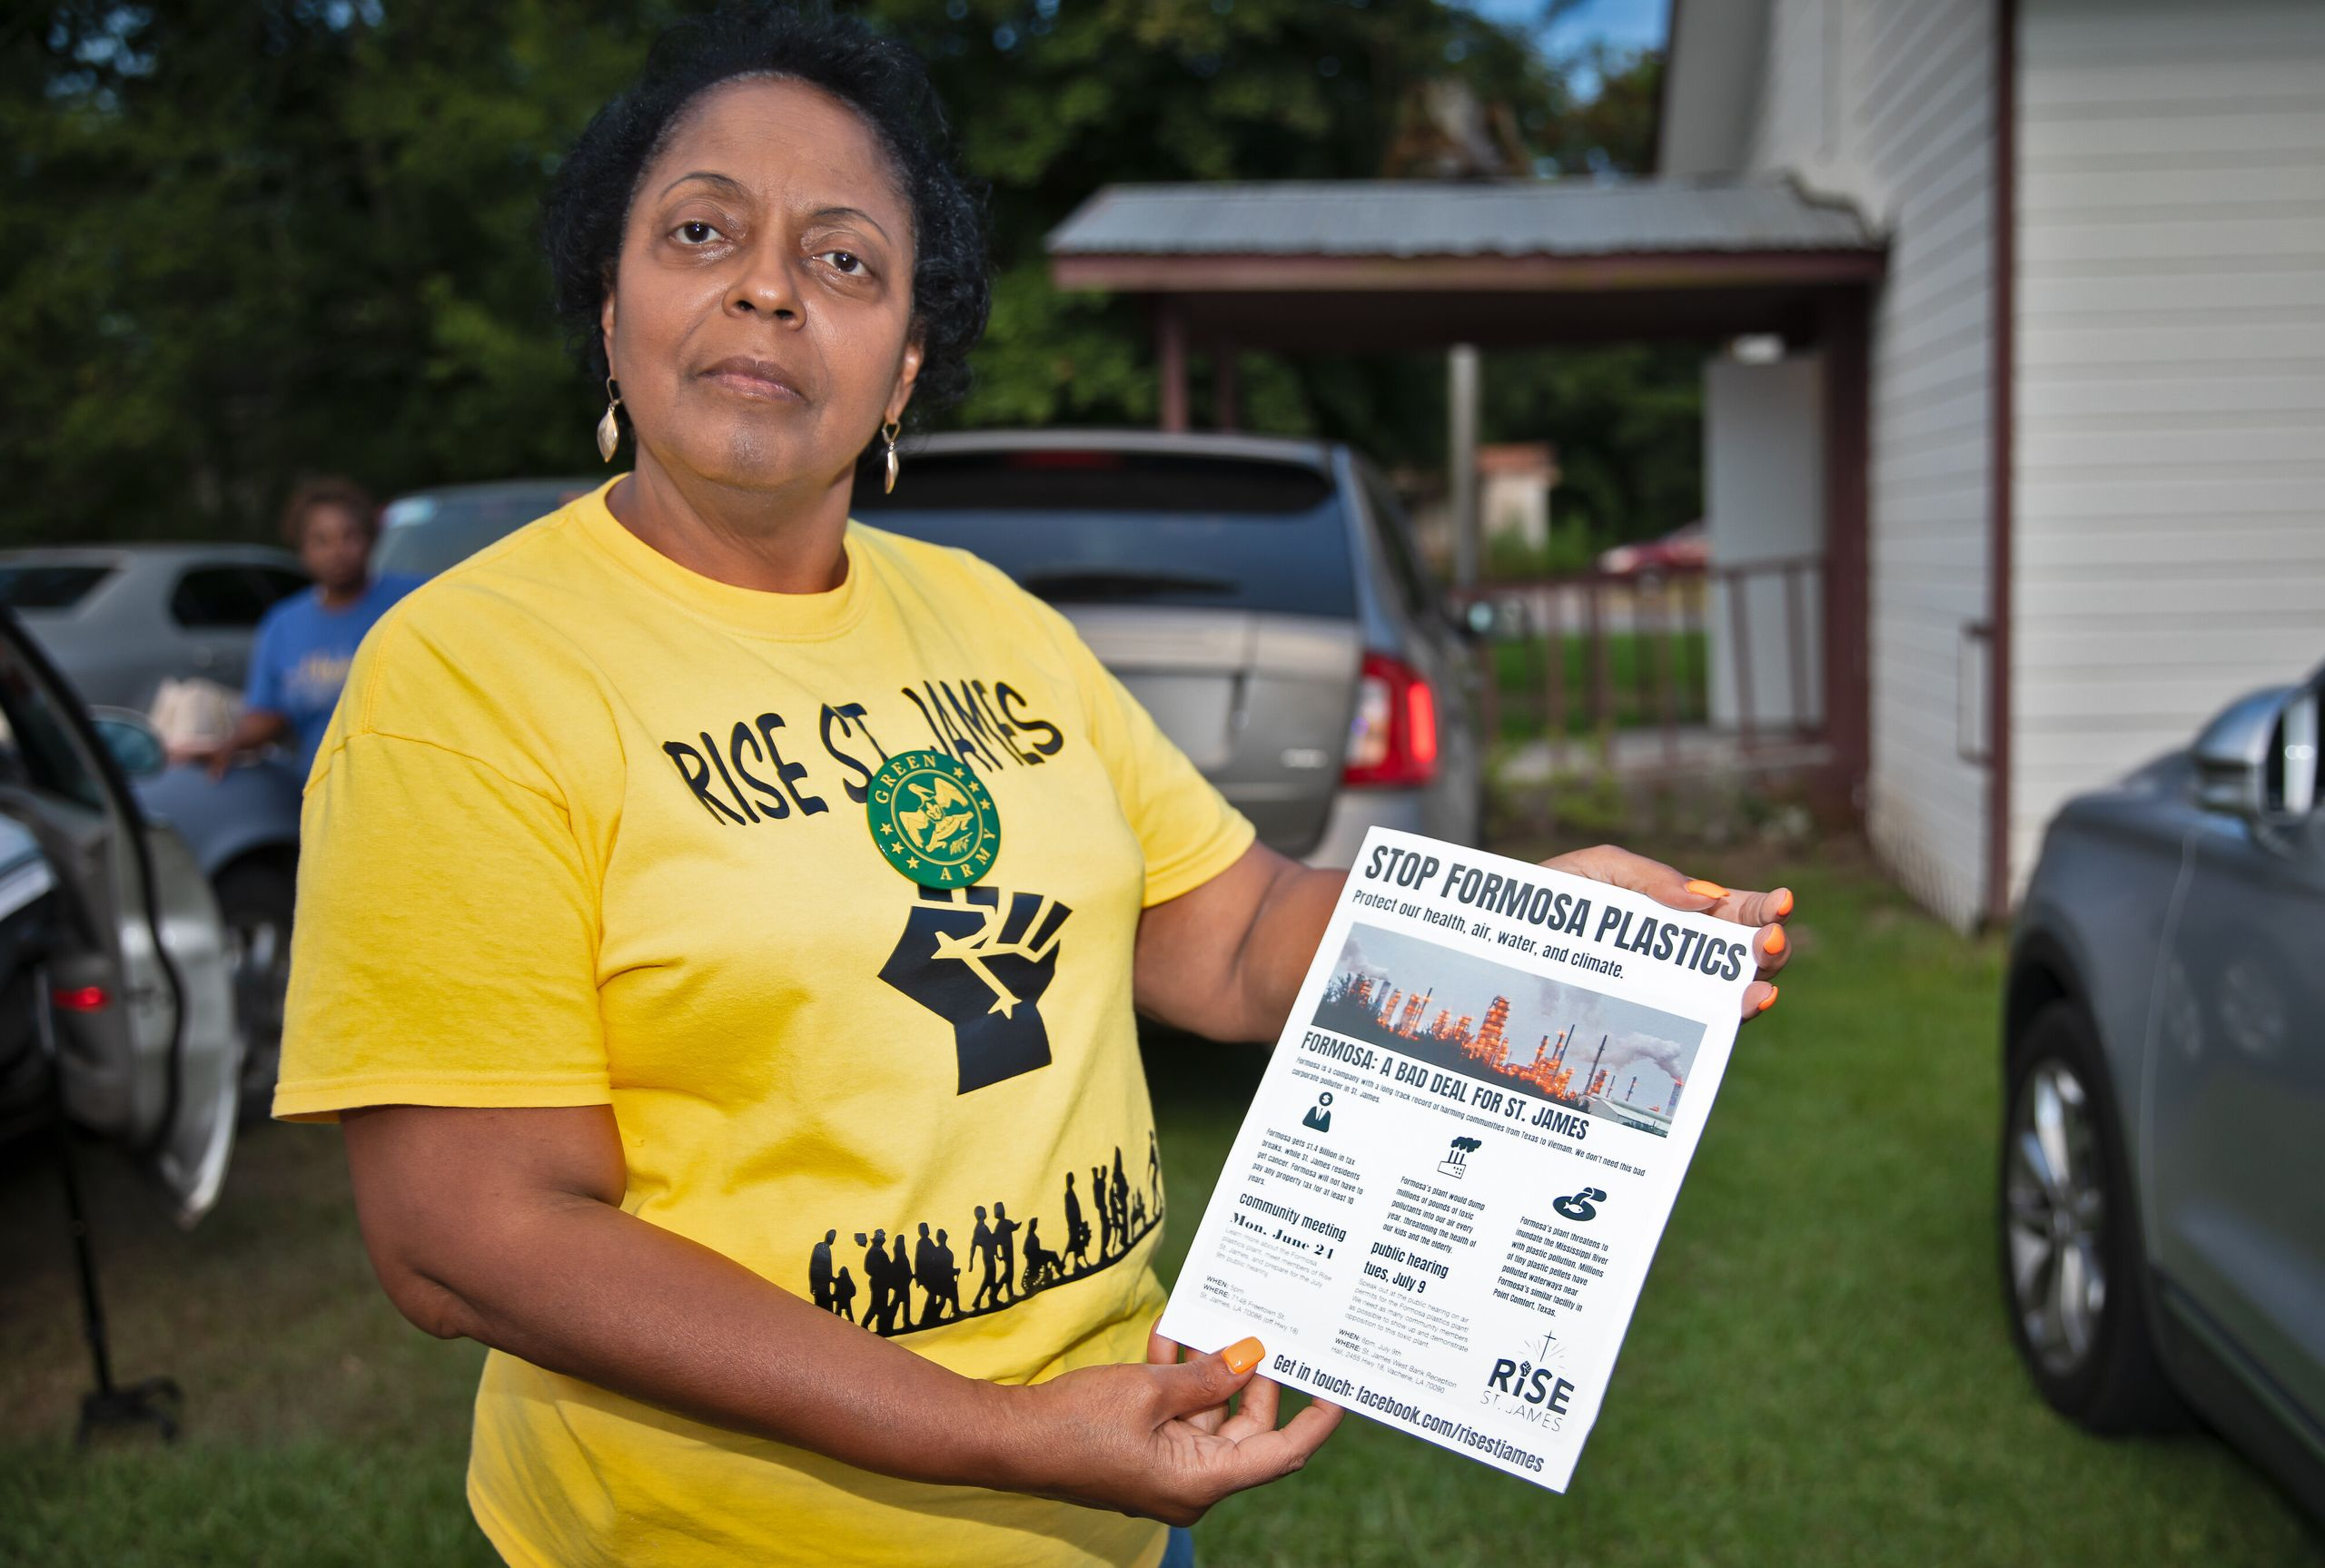 Sharon Lavinge founder of RISE St. James in front of the Mt. Triumph Baptist Church with a flyer about the proposed Formosa p